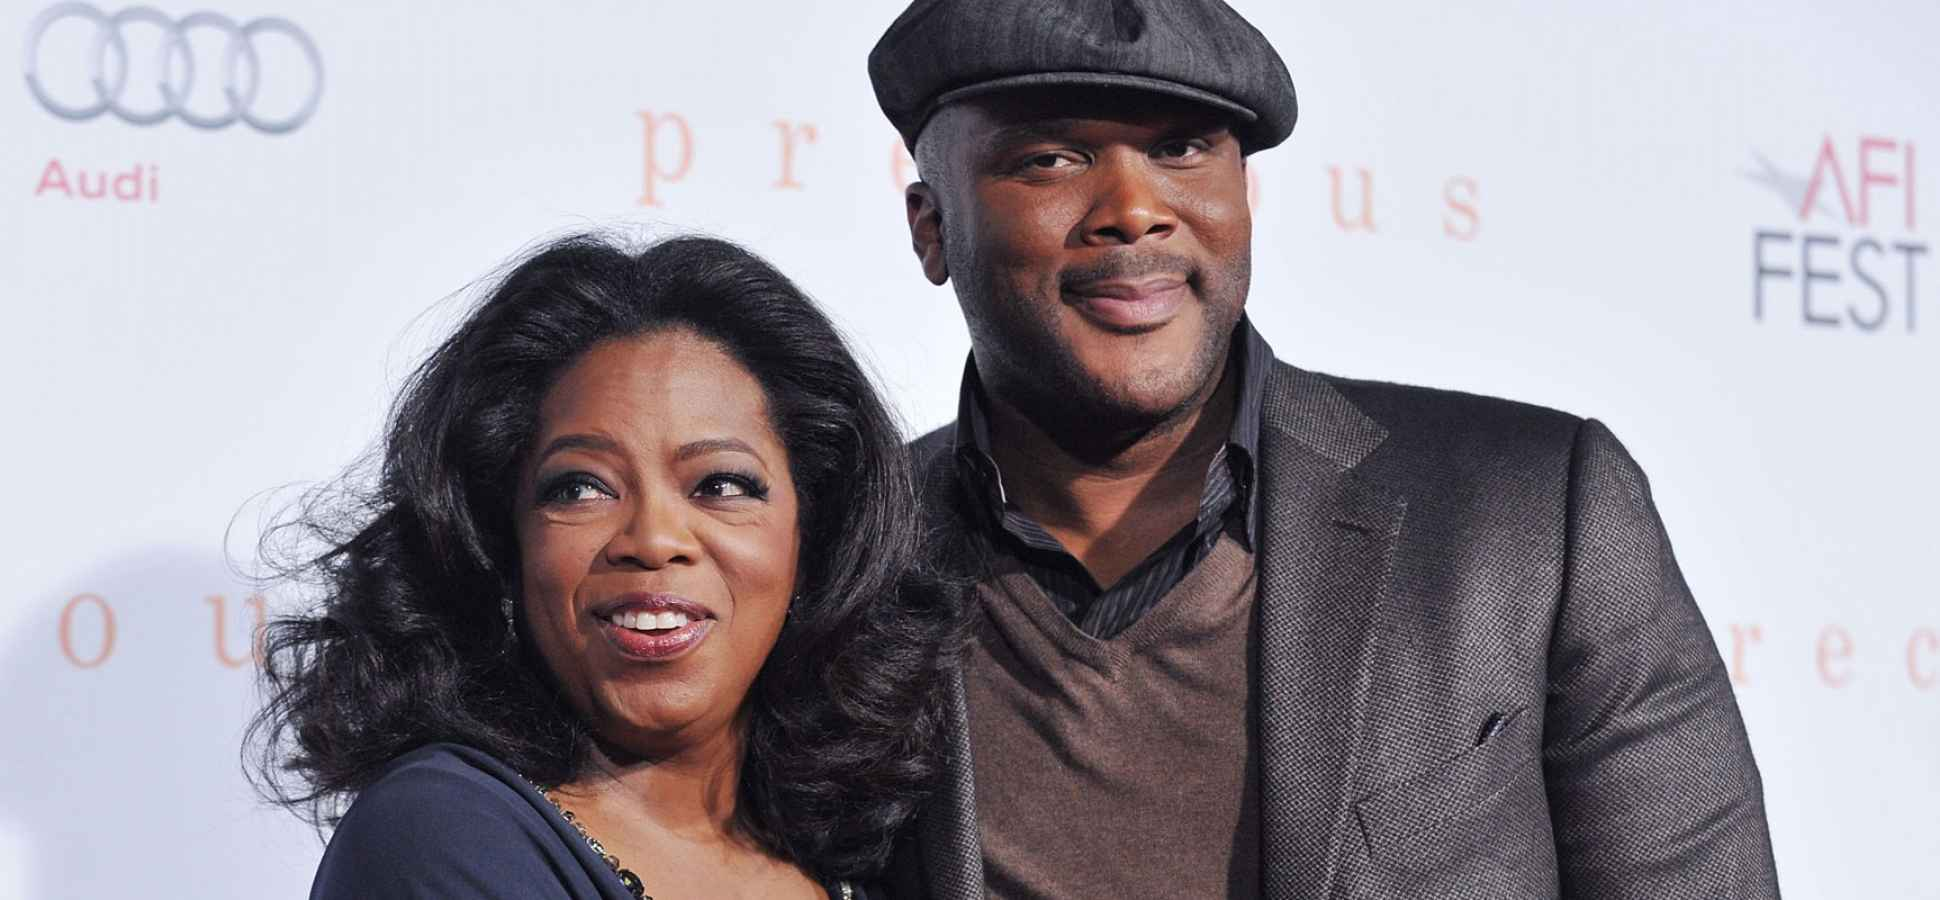 Oprah Winfrey and Tyler Perry? Beware: Partnerships Can Wreck Your Brand